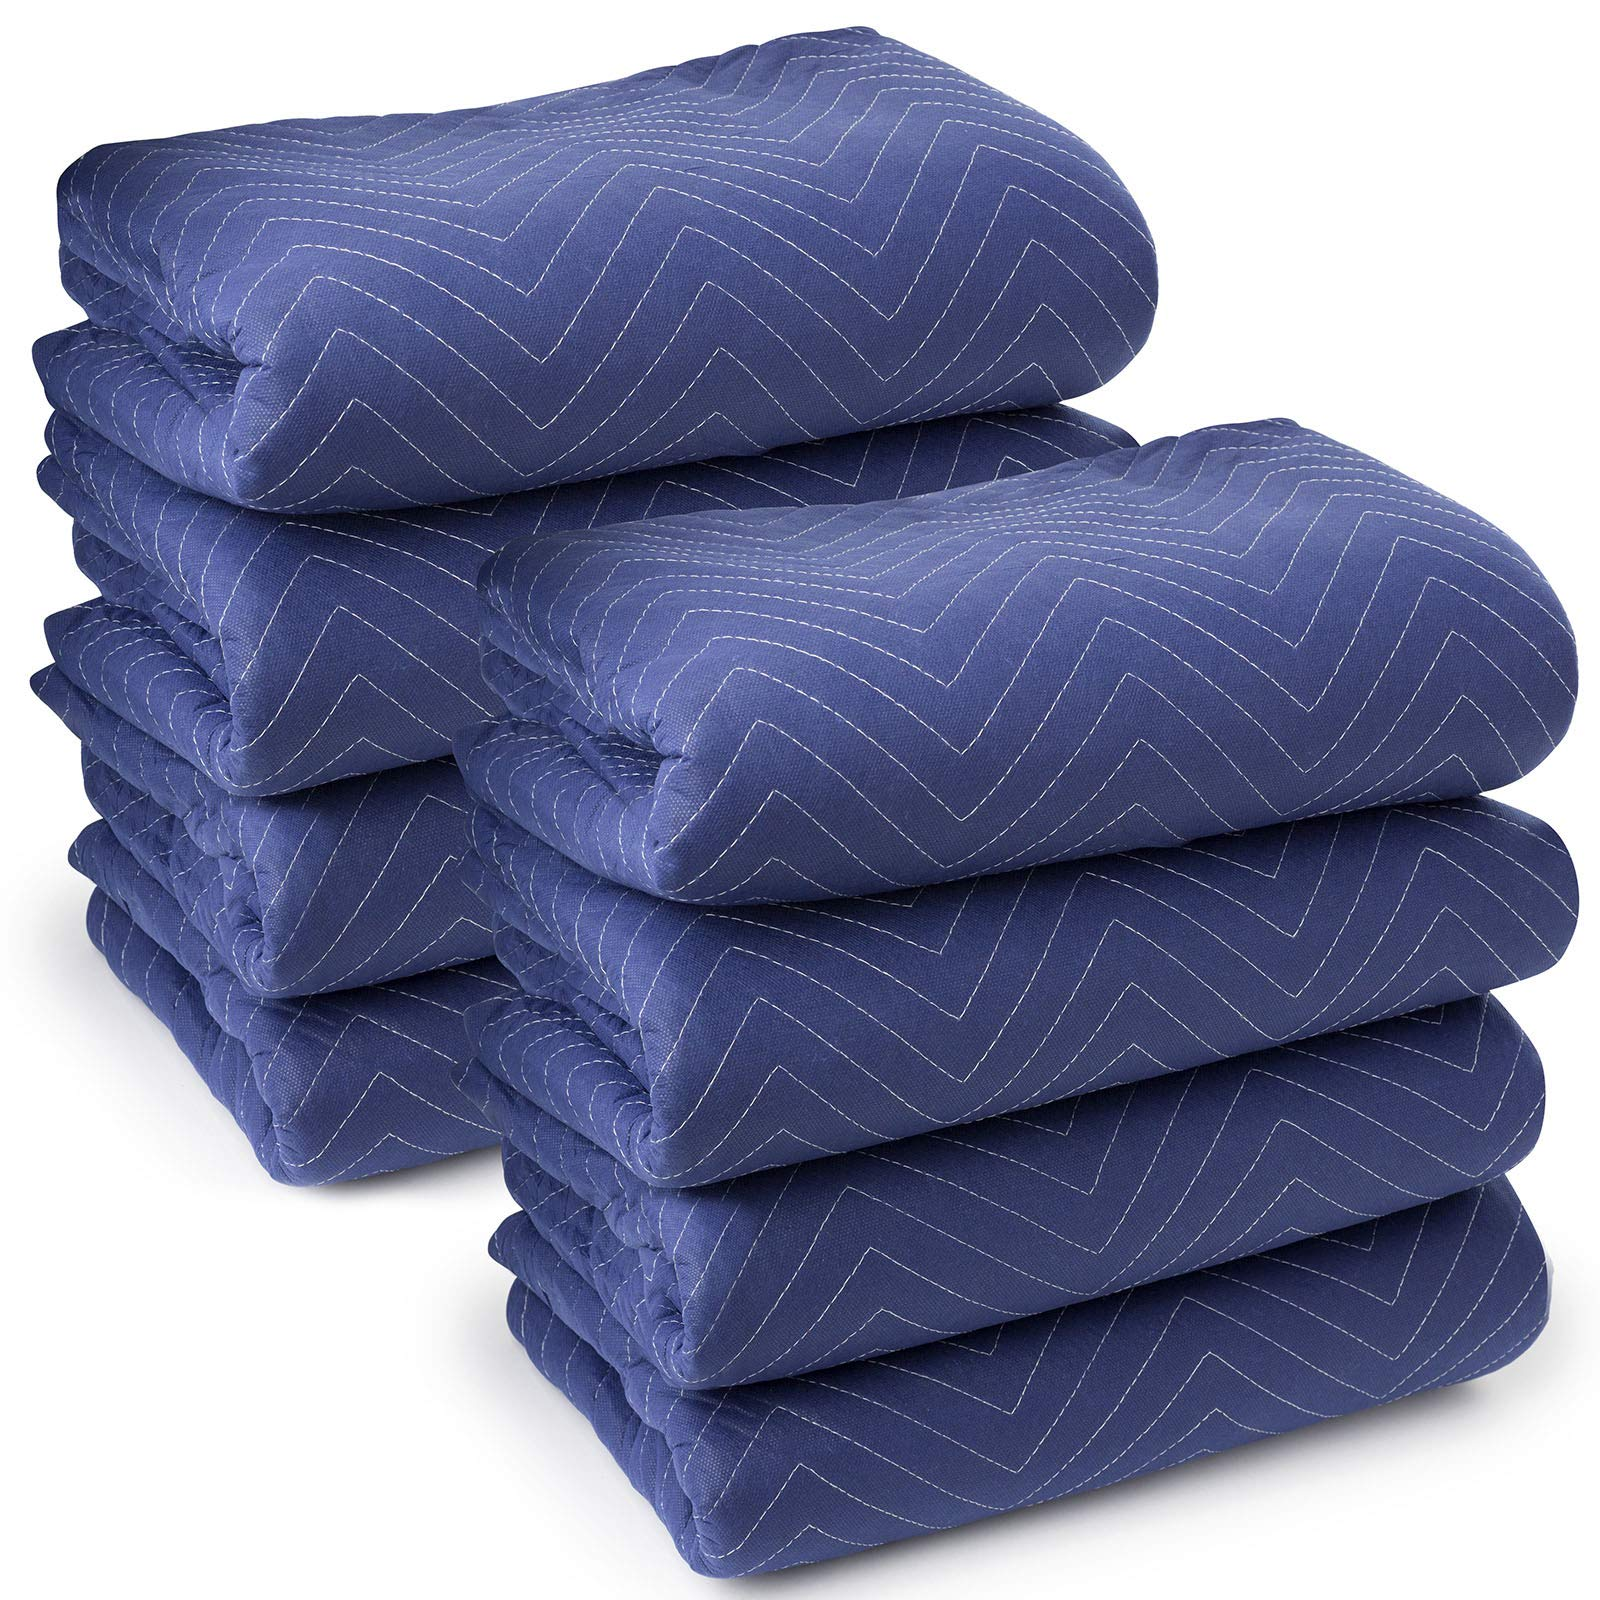 Sure-Max 8 Moving & Packing Blankets - Deluxe Pro - 80'' x 72'' (40 lb/dz weight) - Professional Quilted Shipping Furniture Pads Royal Blue